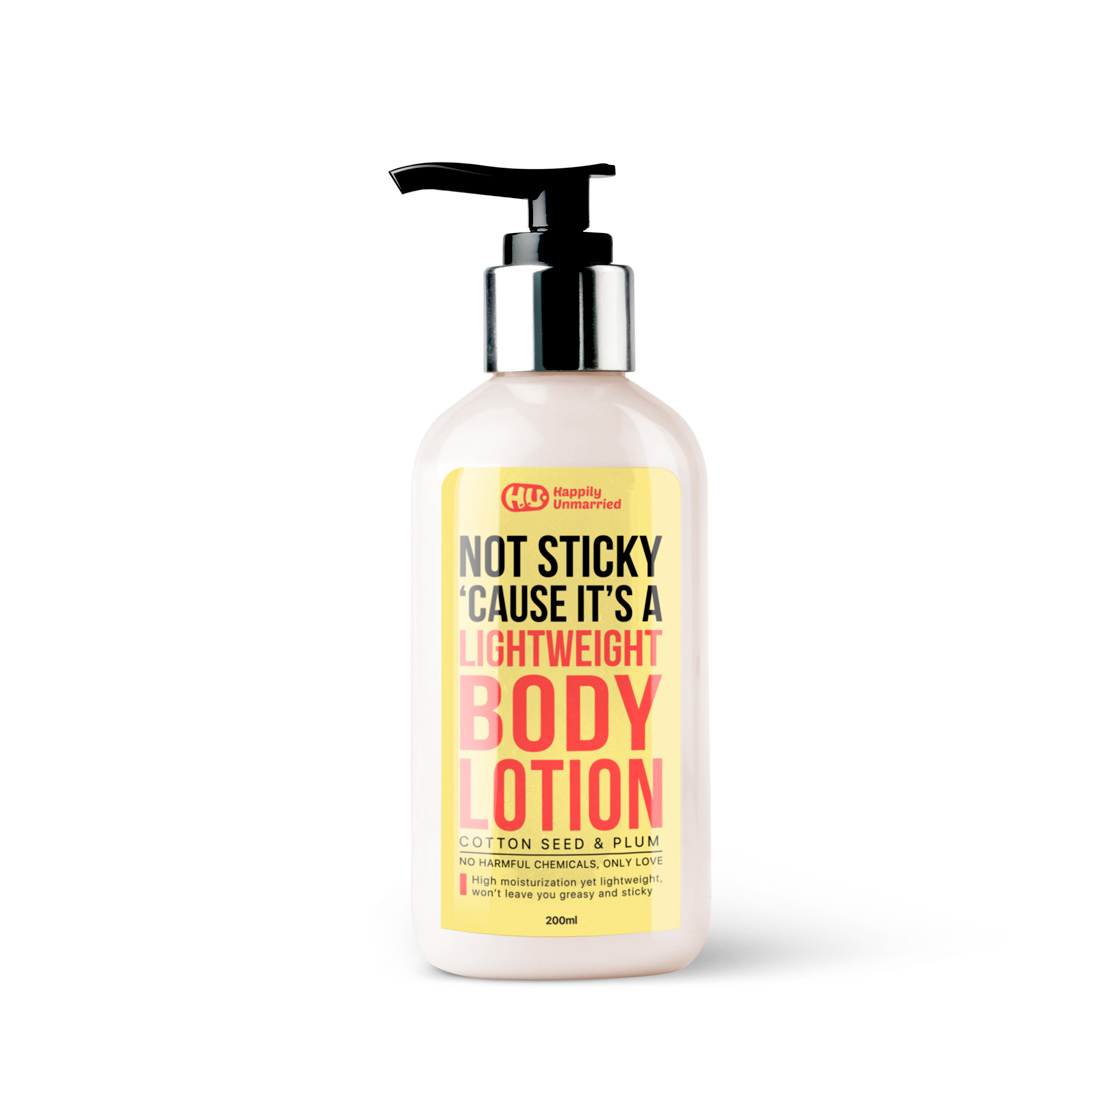 Body lotion - Cottonseed & Plum - 200ml